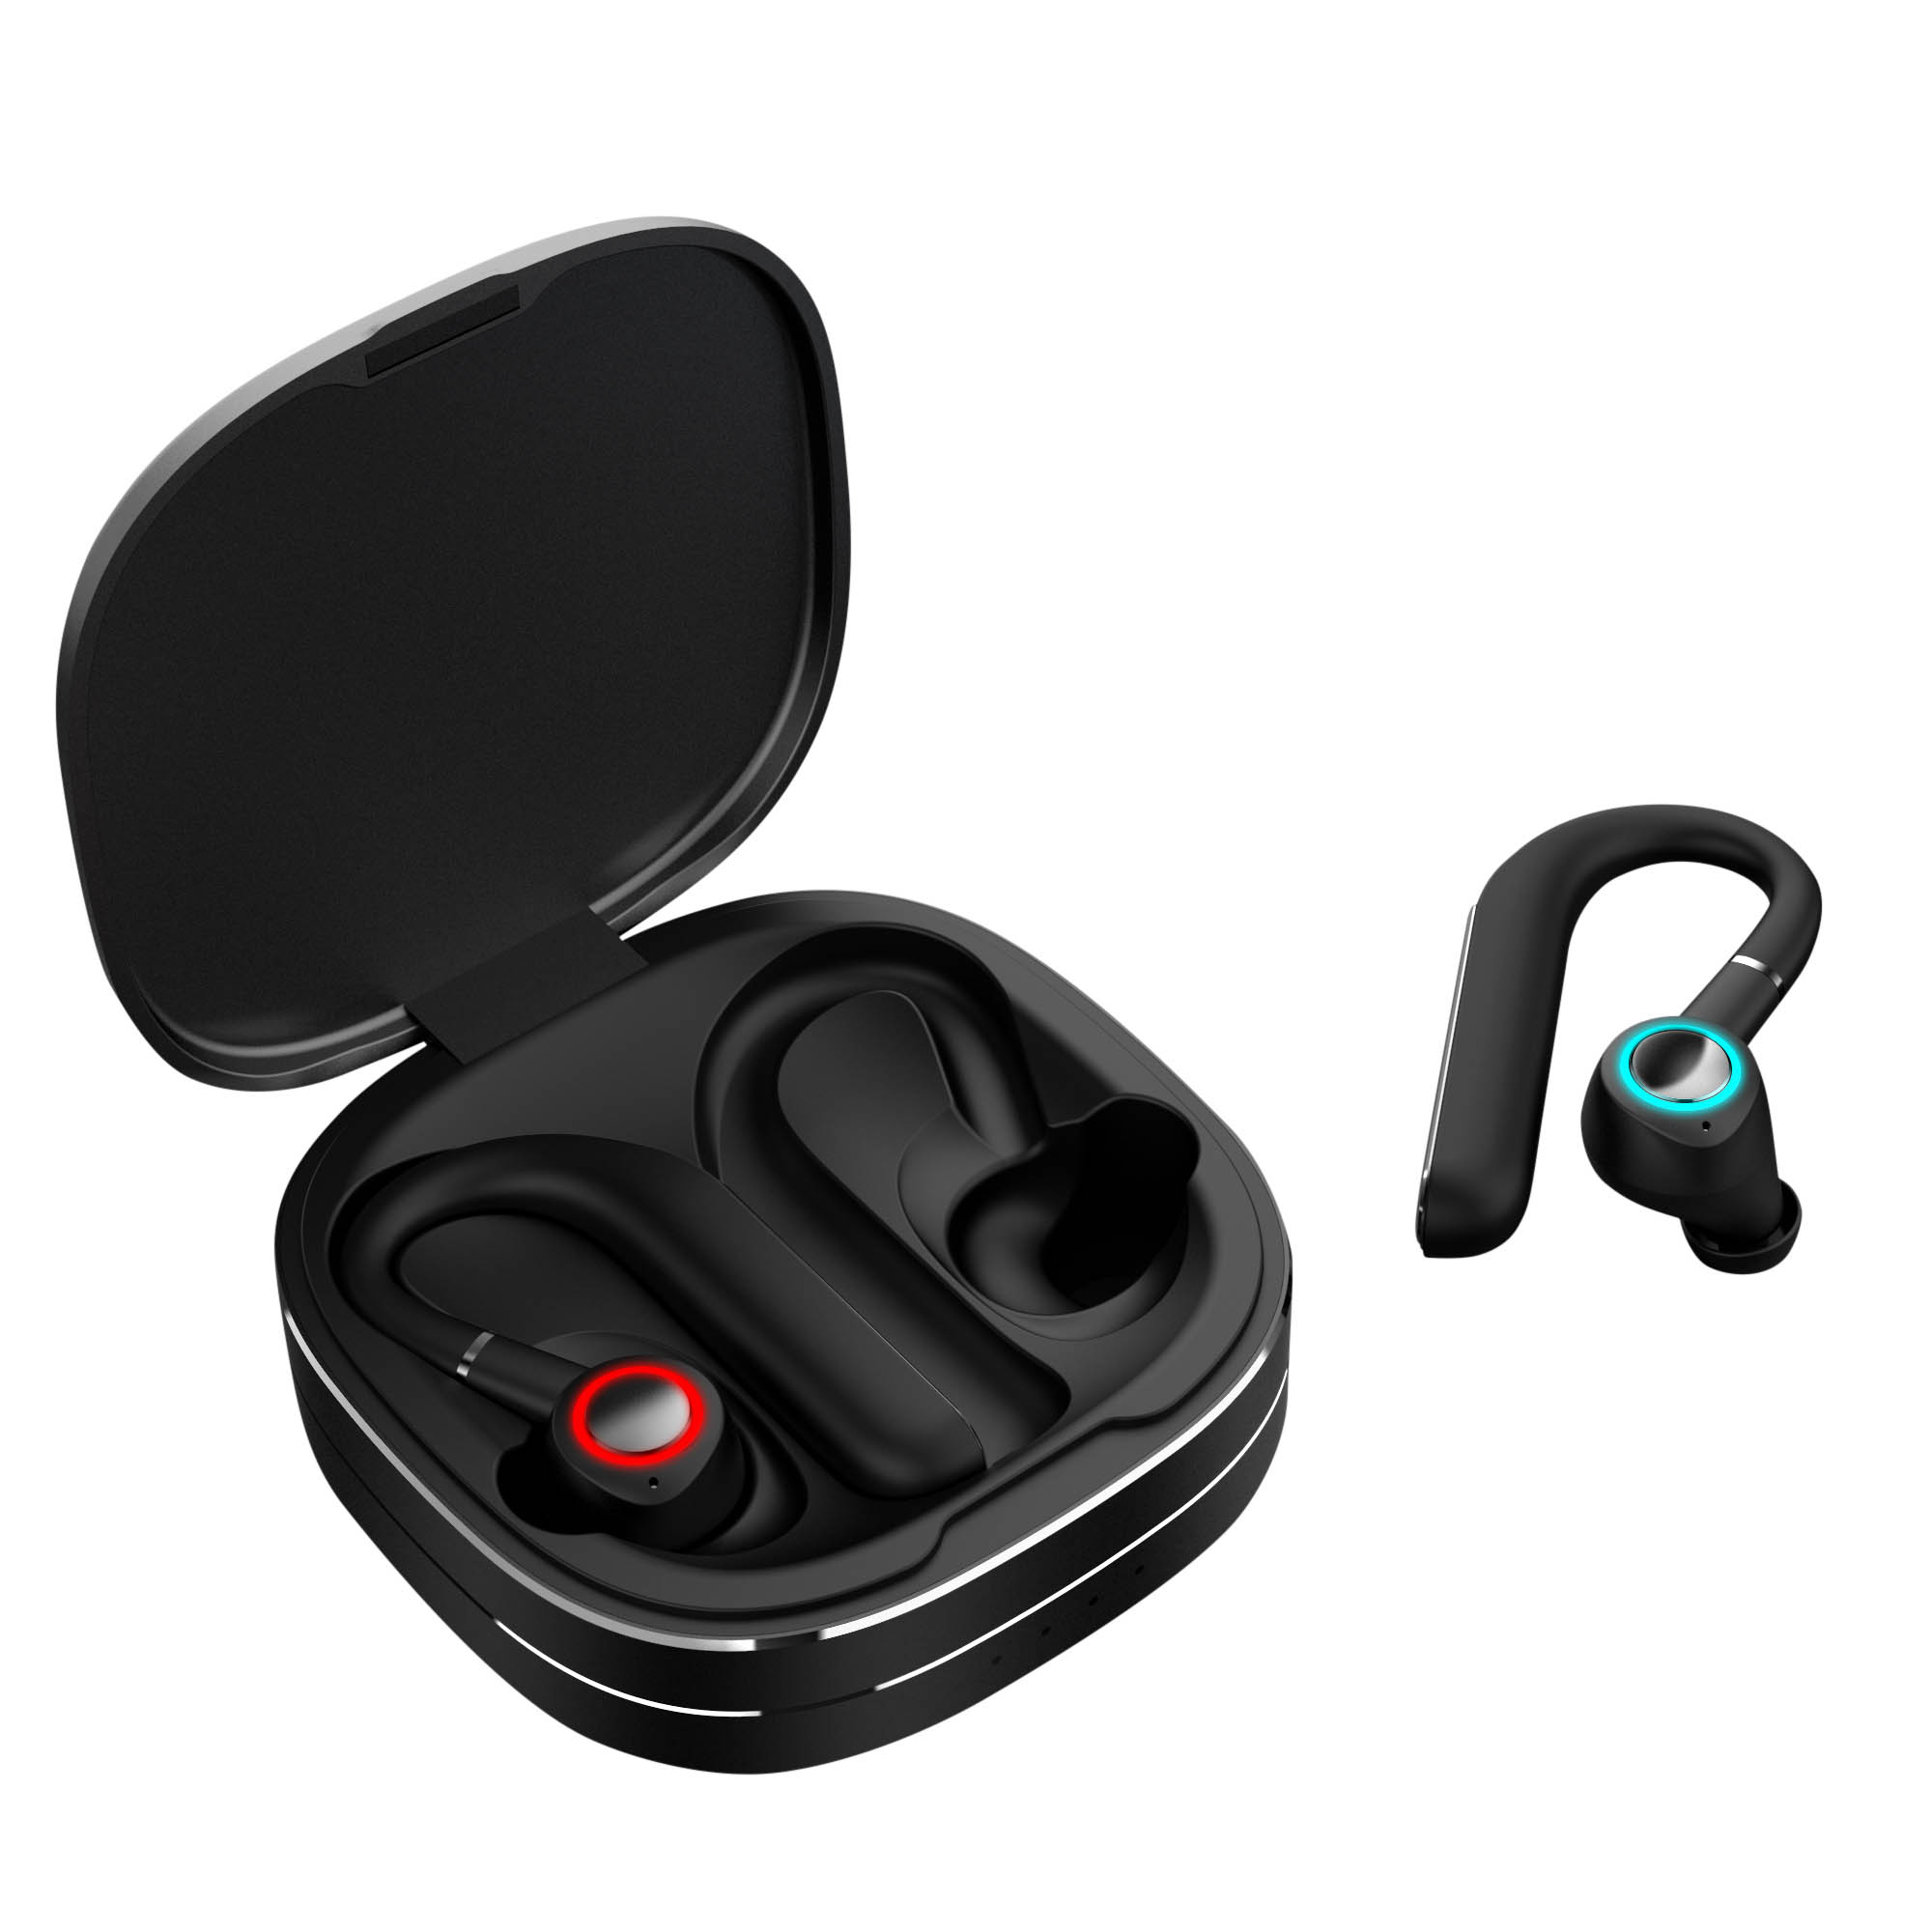 Earhook stereo waterproof tws earbuds